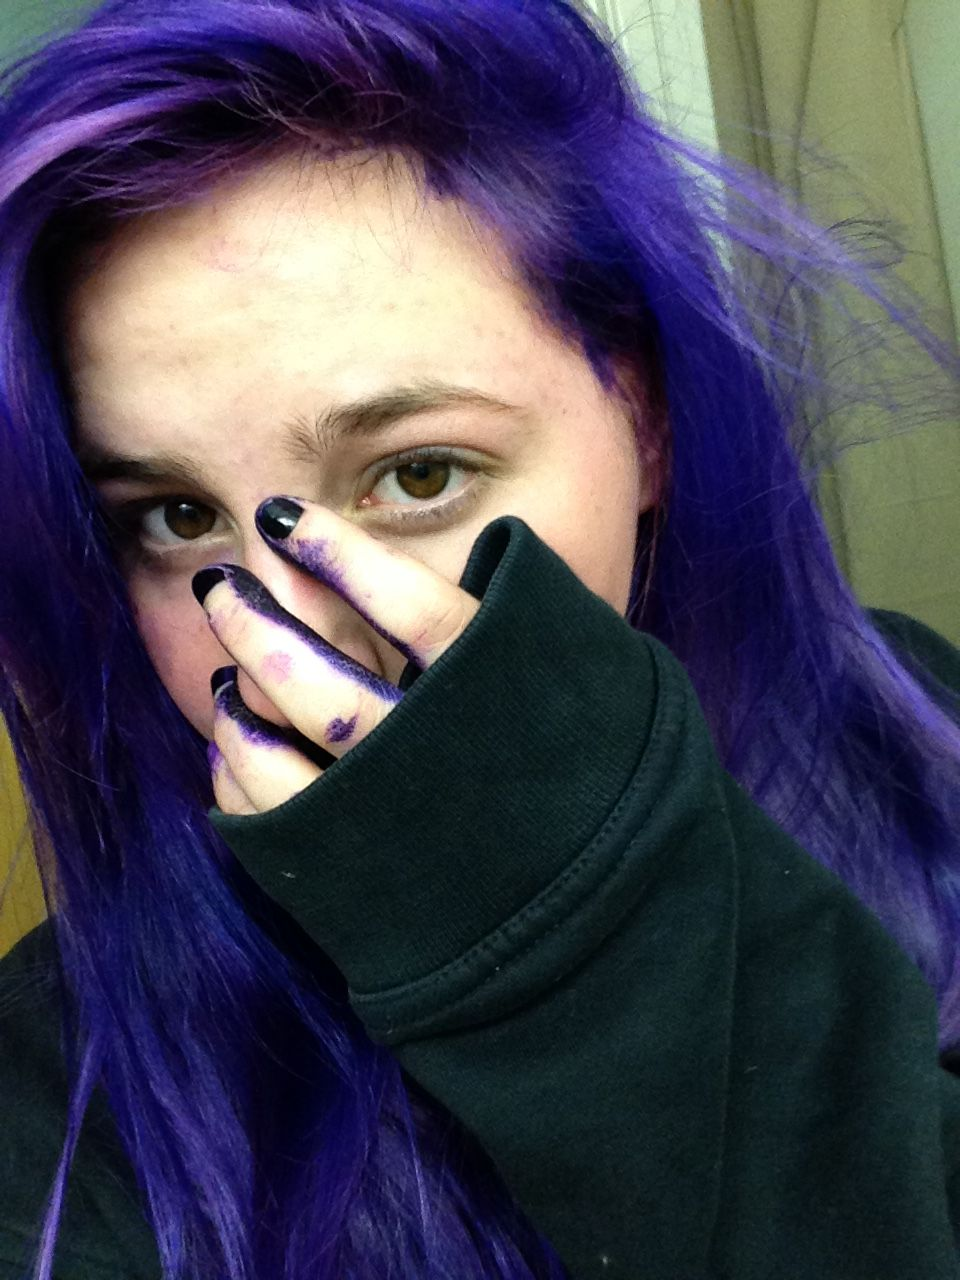 Splat Purple Desire Splat Purple Hair Dye Purple Hair Asian Haircut